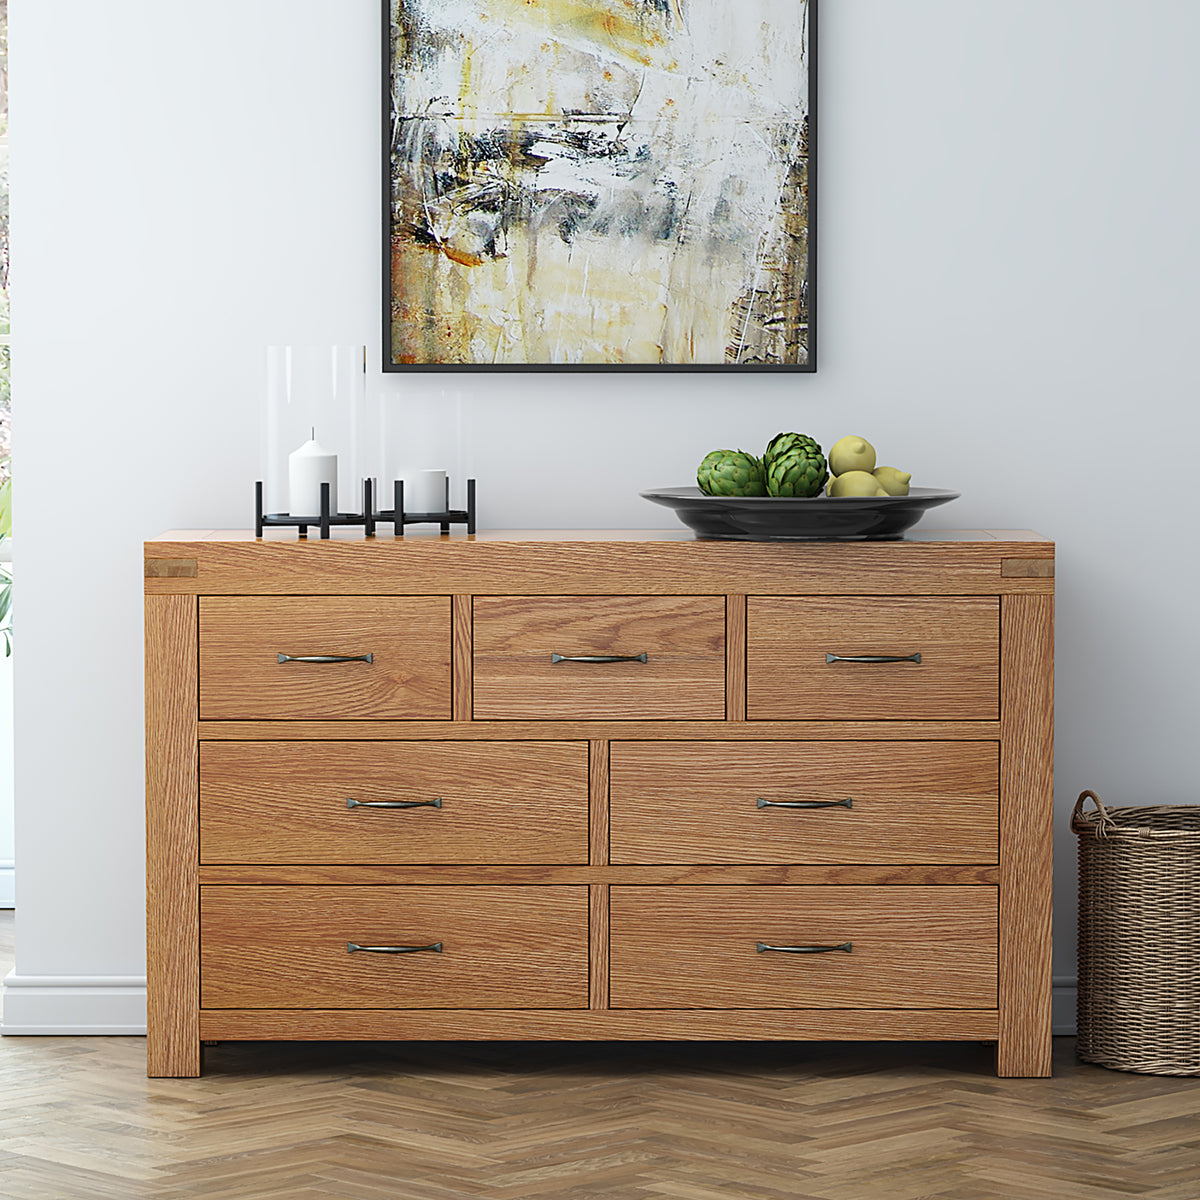 Abbey Grande Large Oak 3 Over 4 Chest of Drawers - Lifestyle